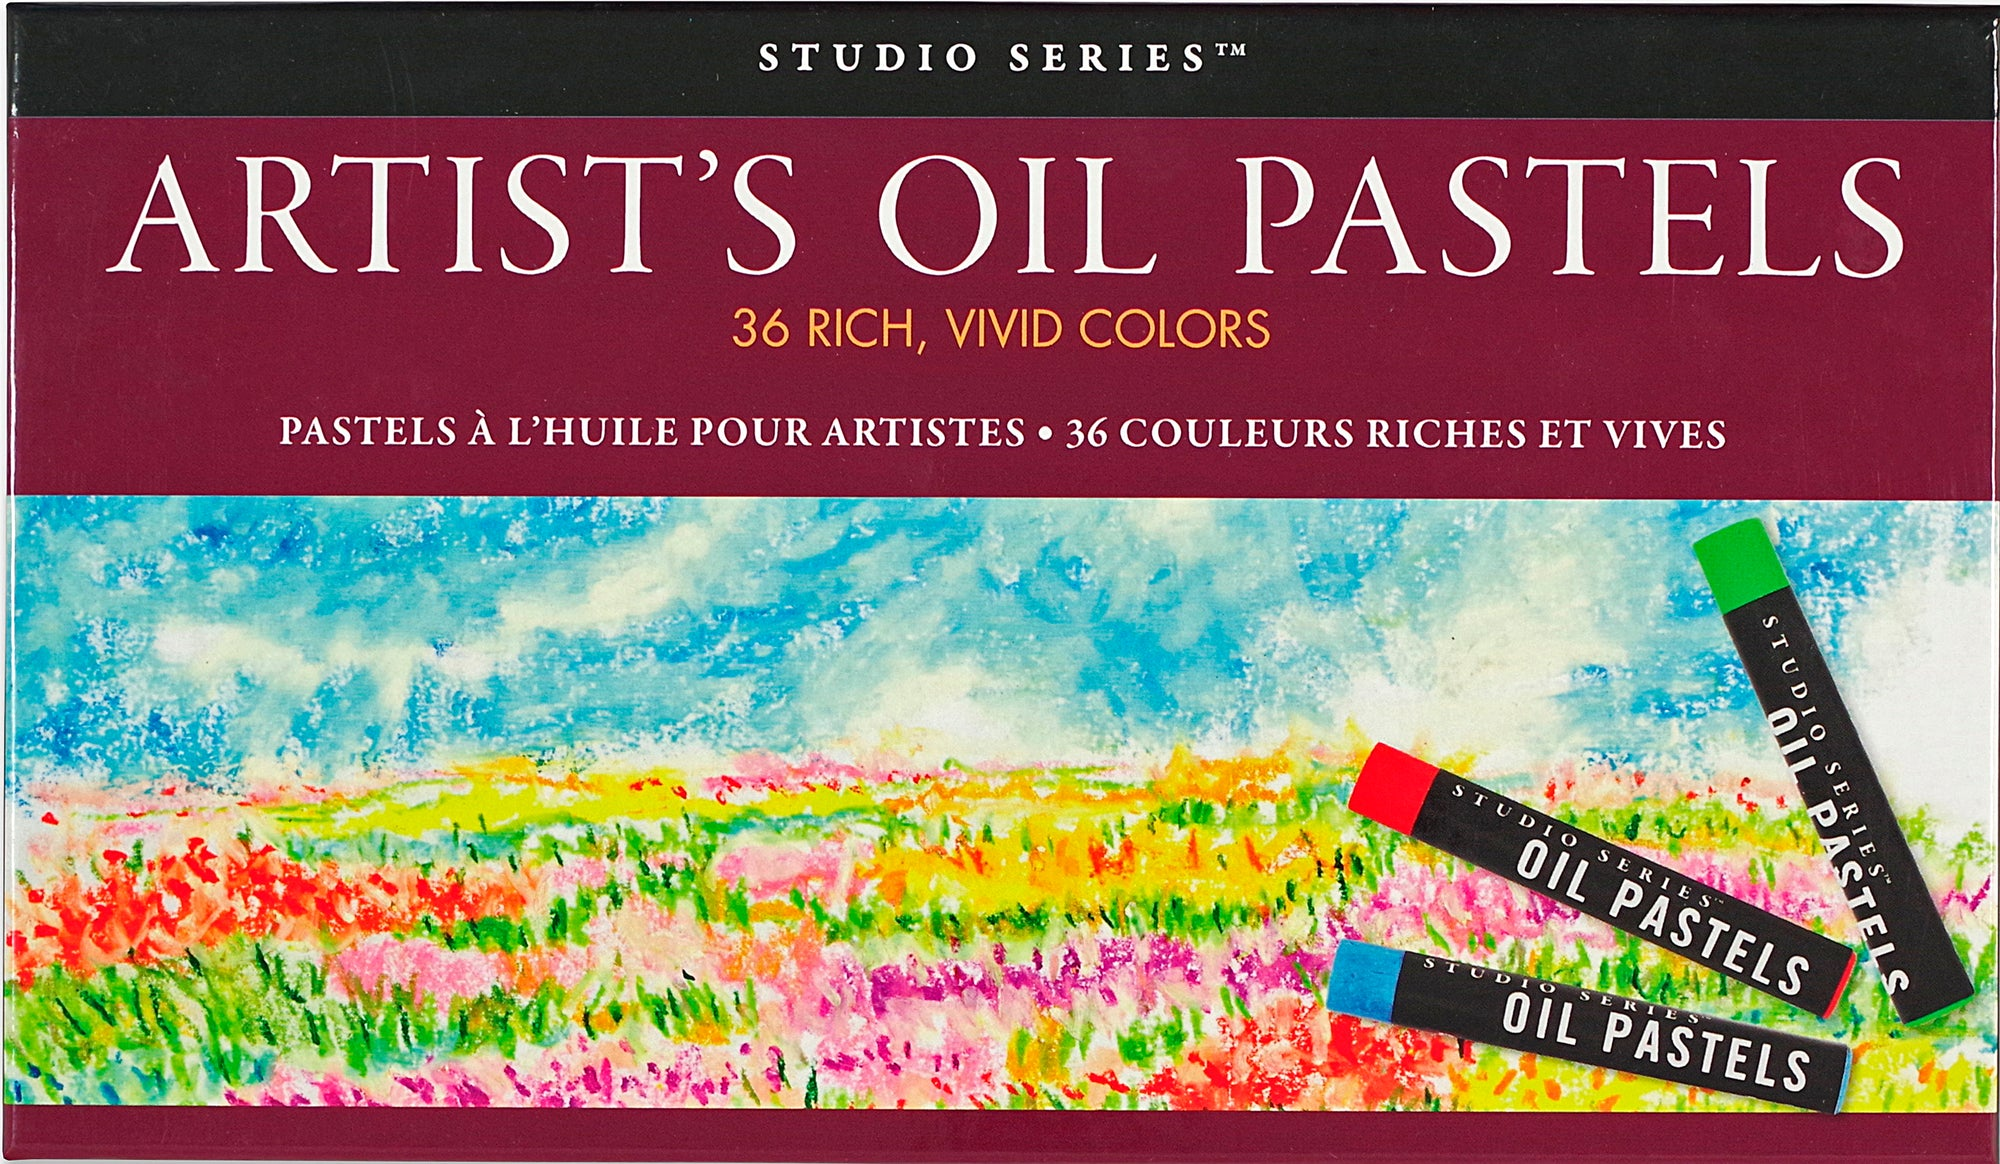 Studio Series Oil Pastels - Heart of the Home PA